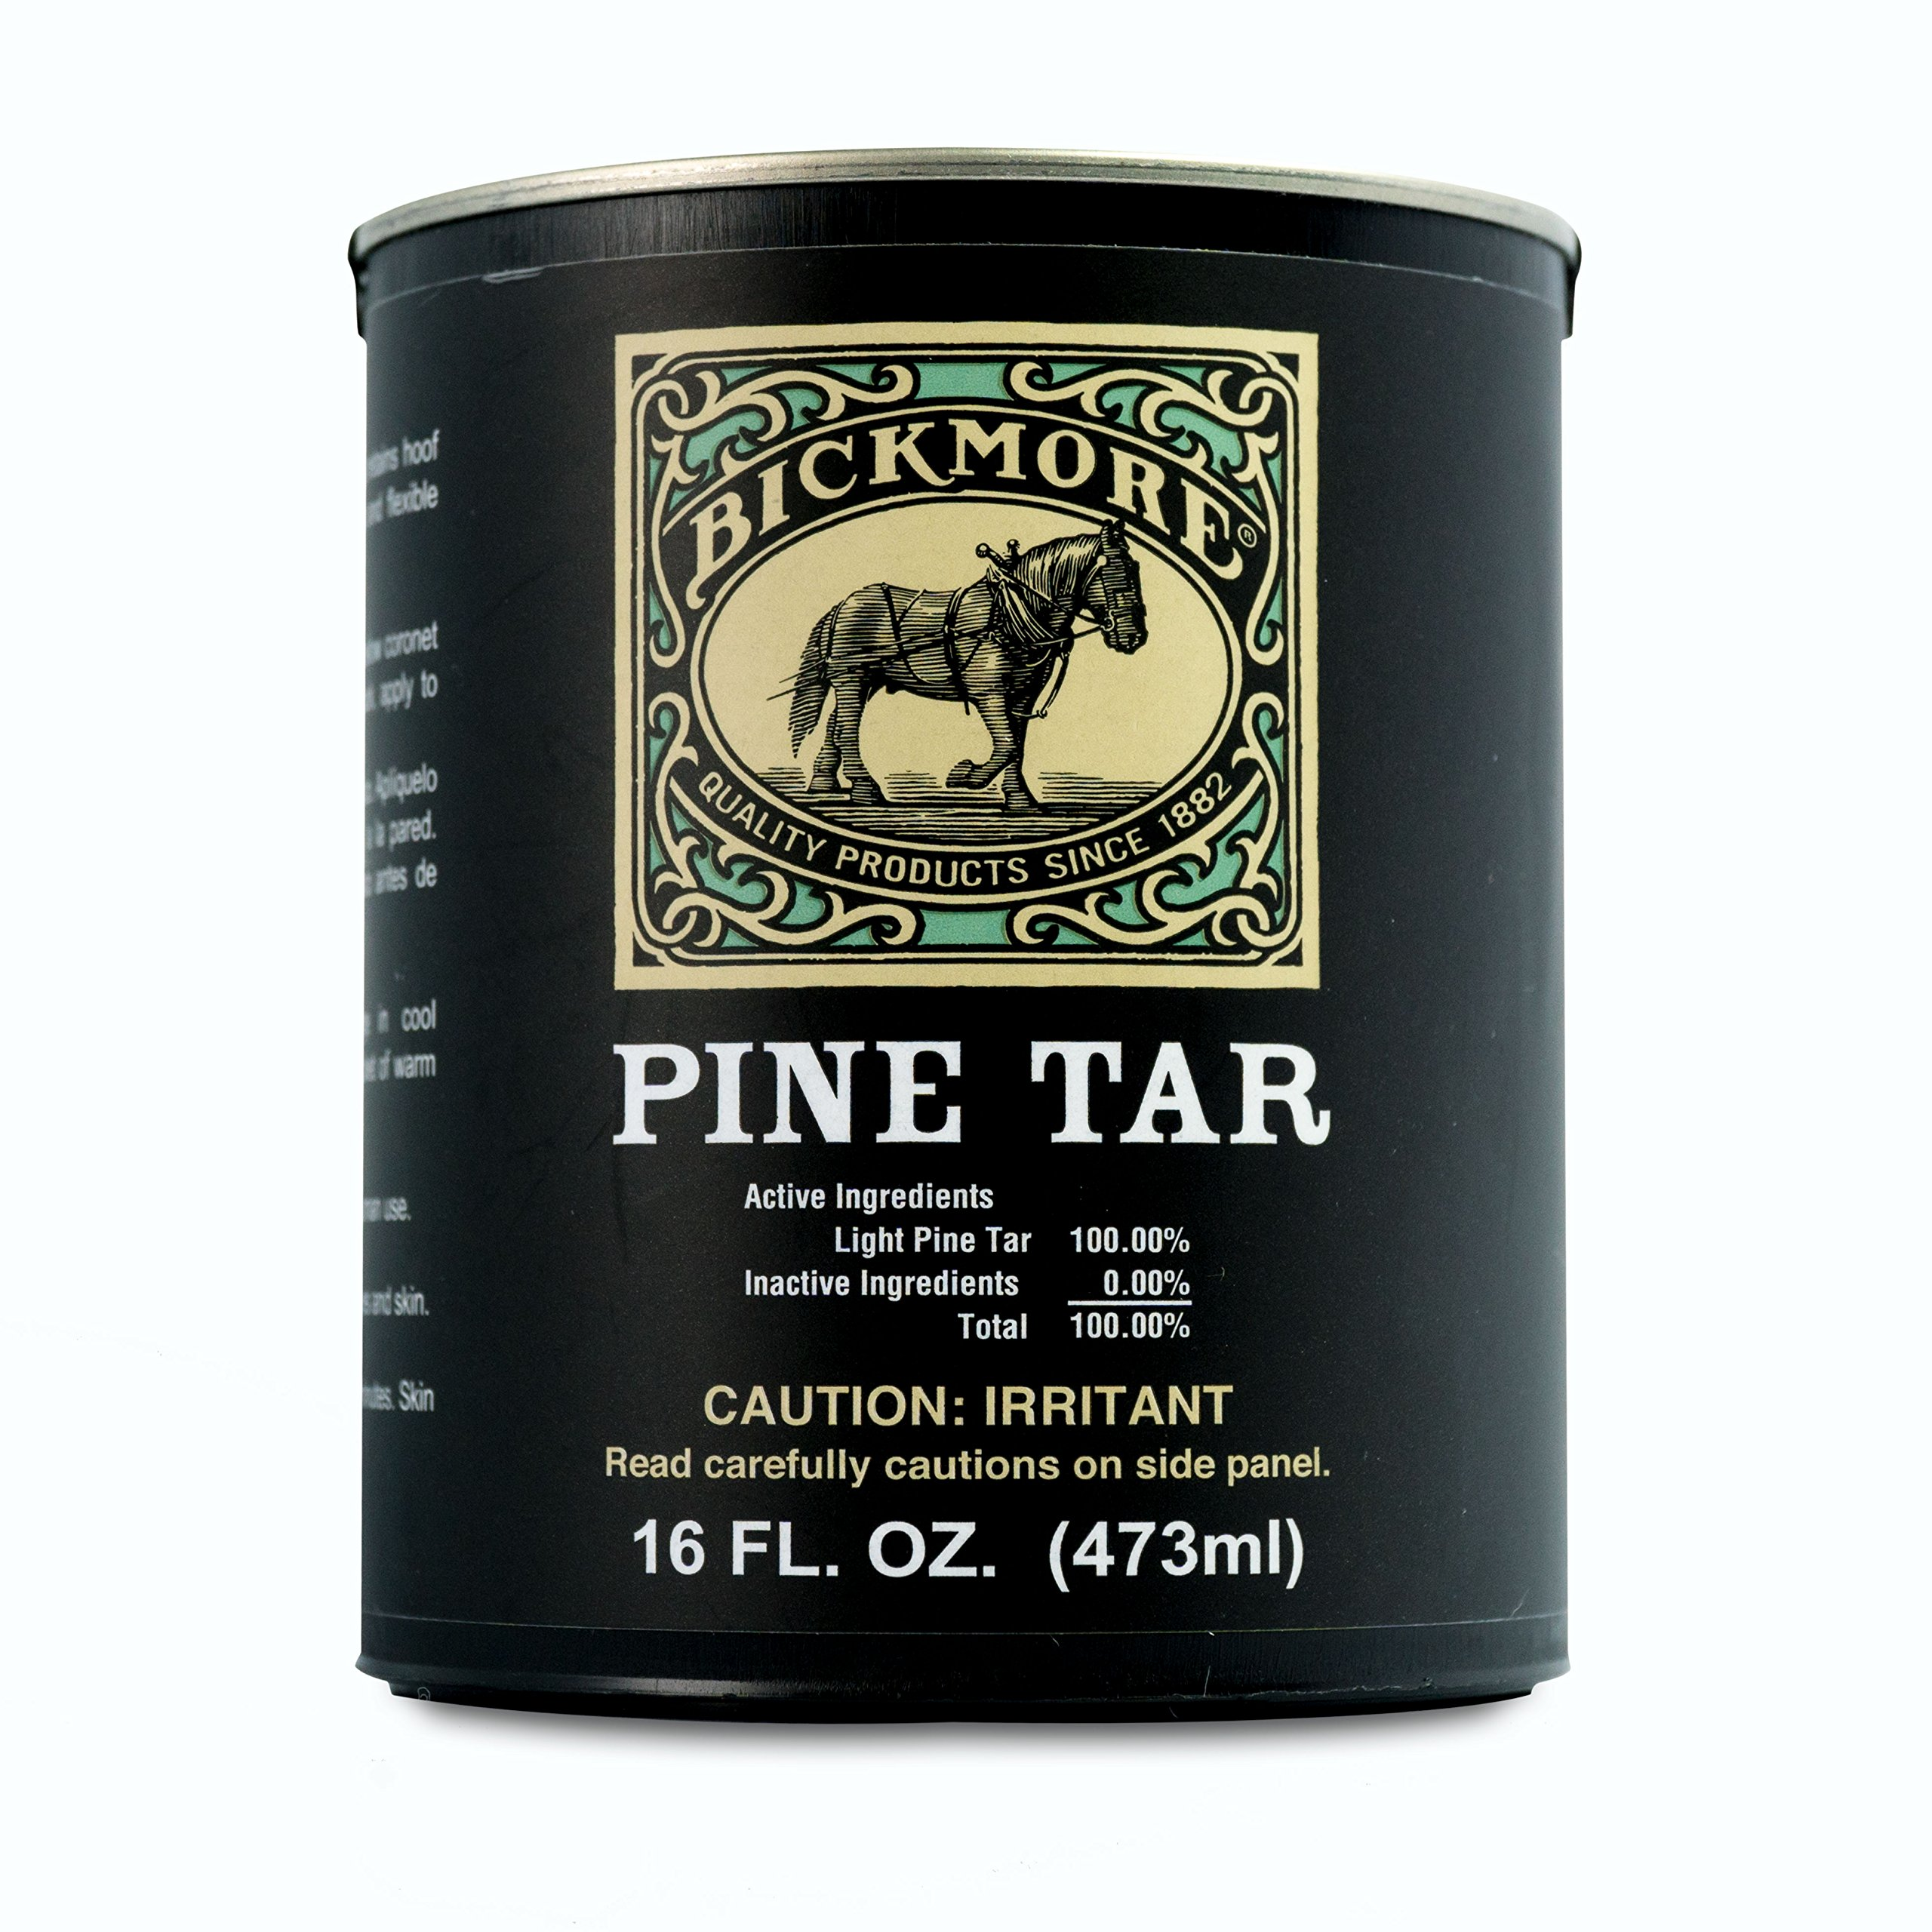 Bickmore Pine Tar 16oz - Hoof Care Formula For Horses by Bickmore (Image #1)